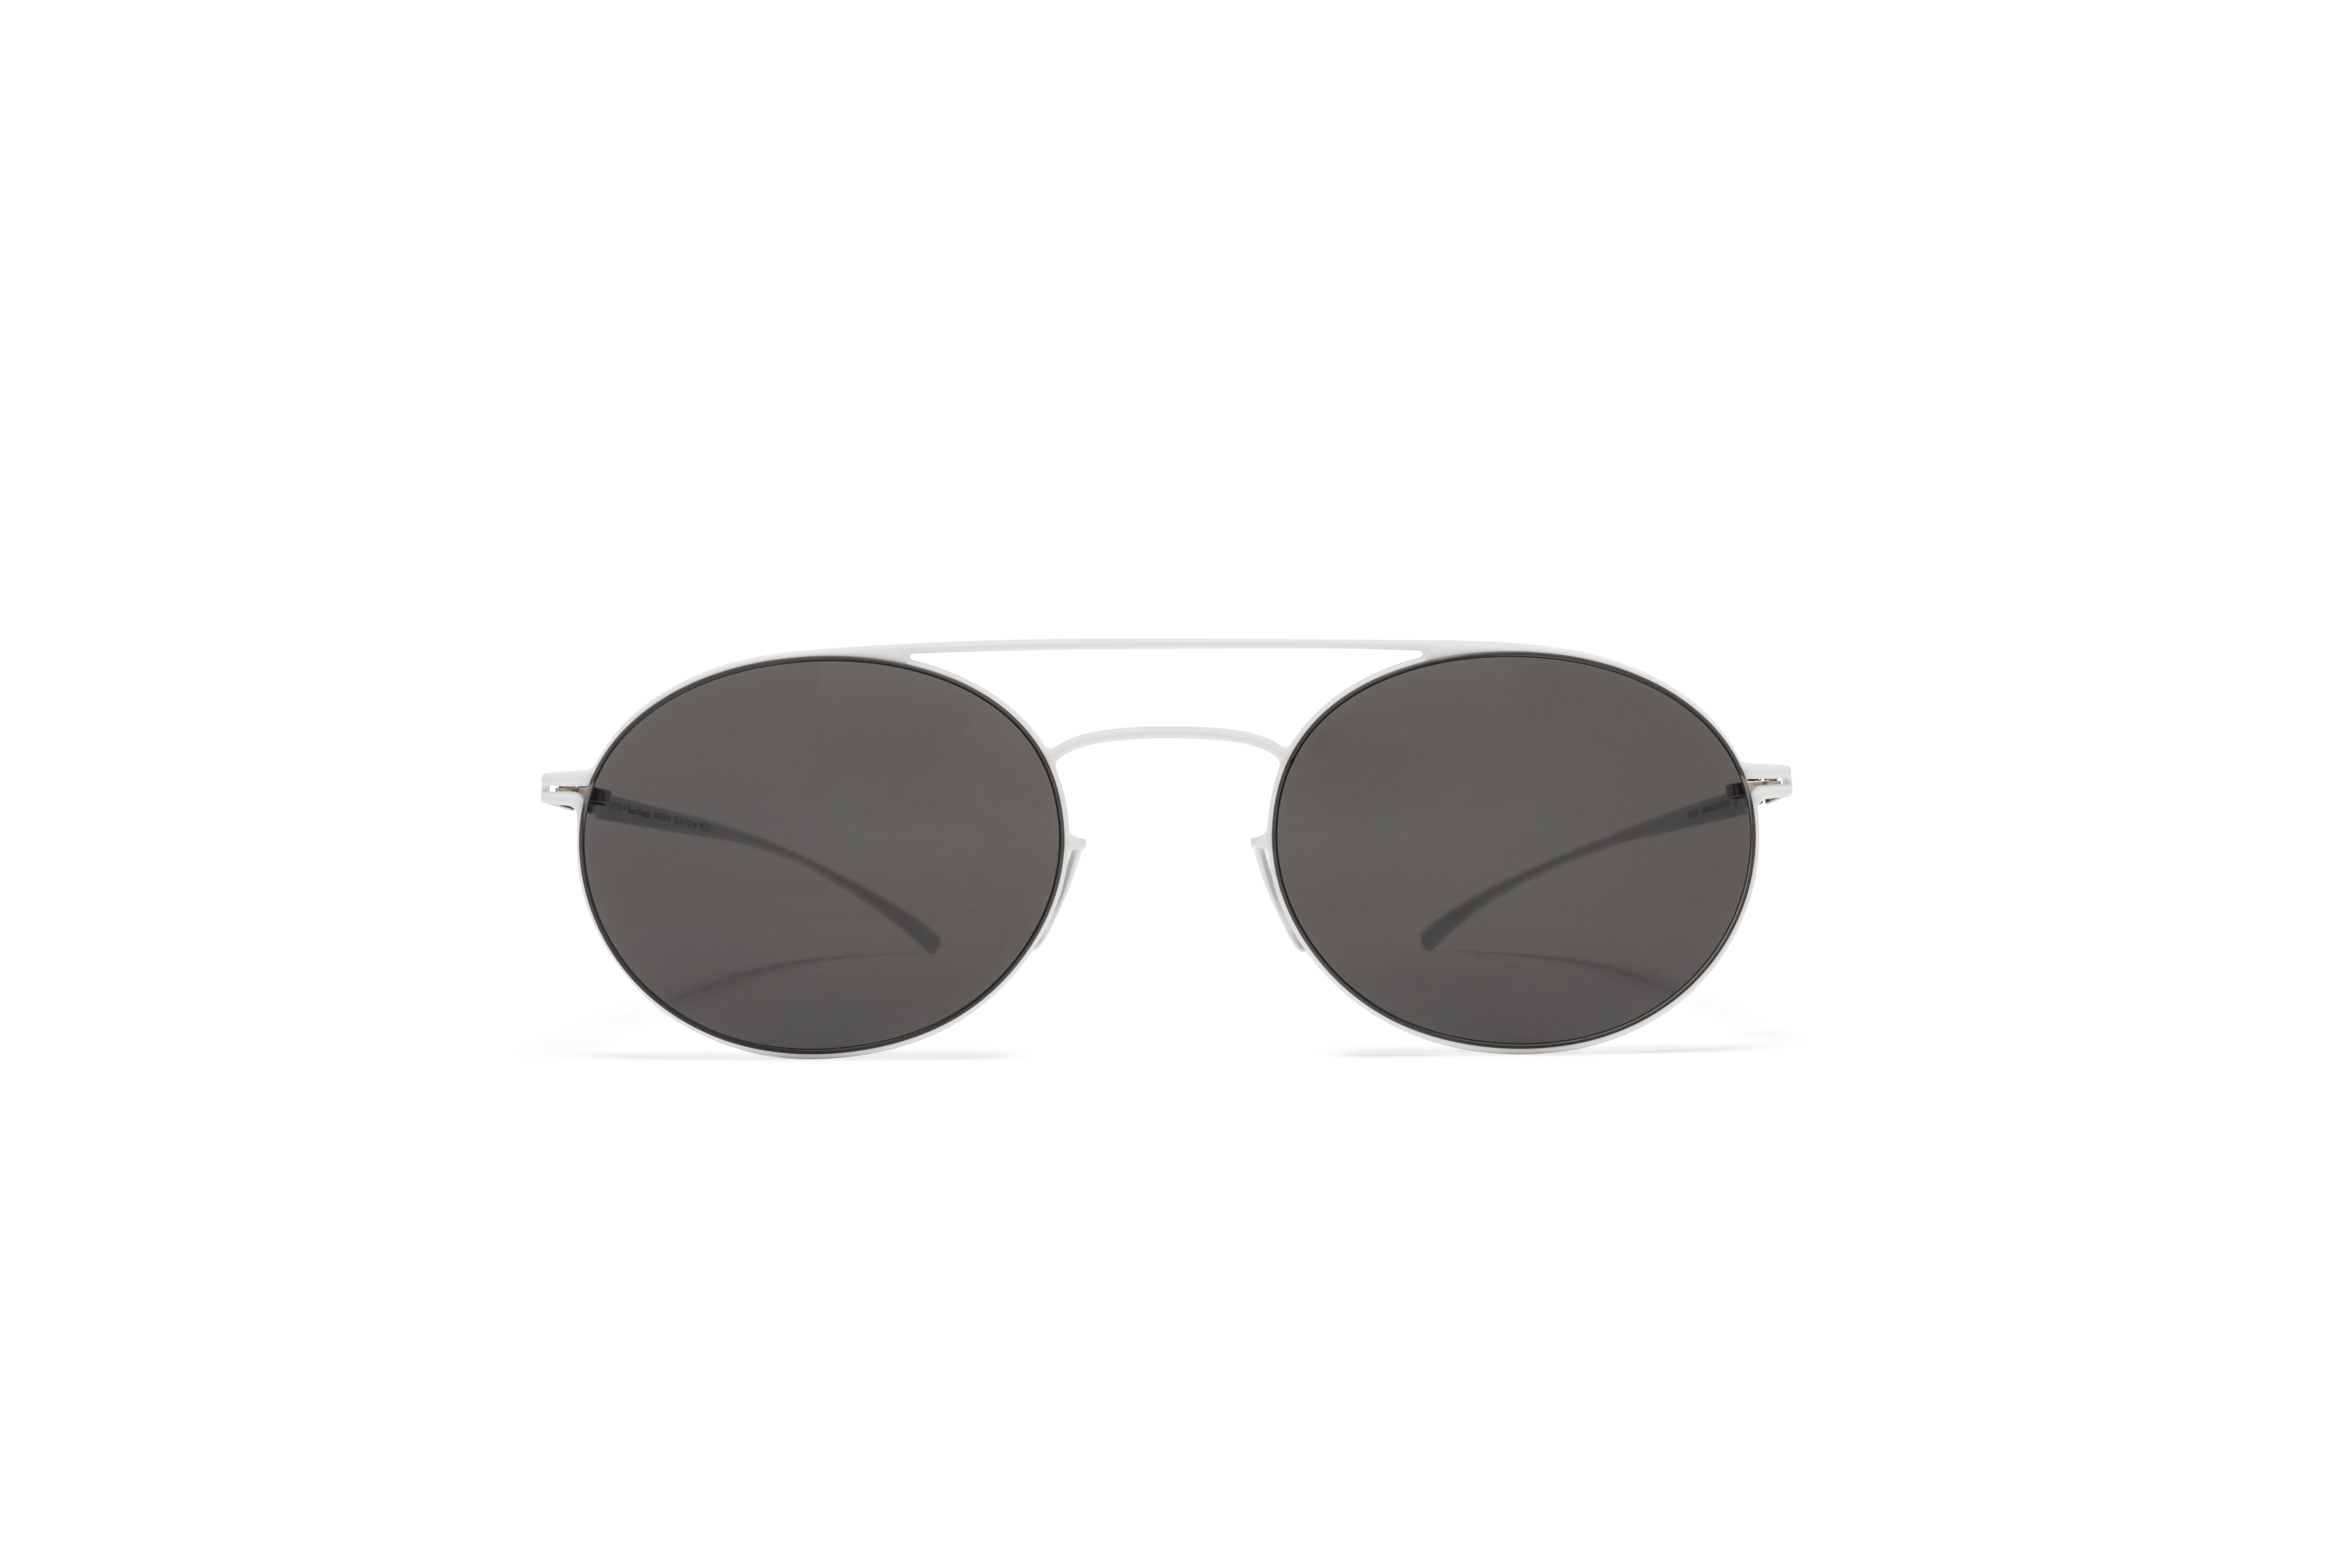 MYKITA Mm Sun Mmesse019 E13 White Dark Grey Soli59fb2414bad02